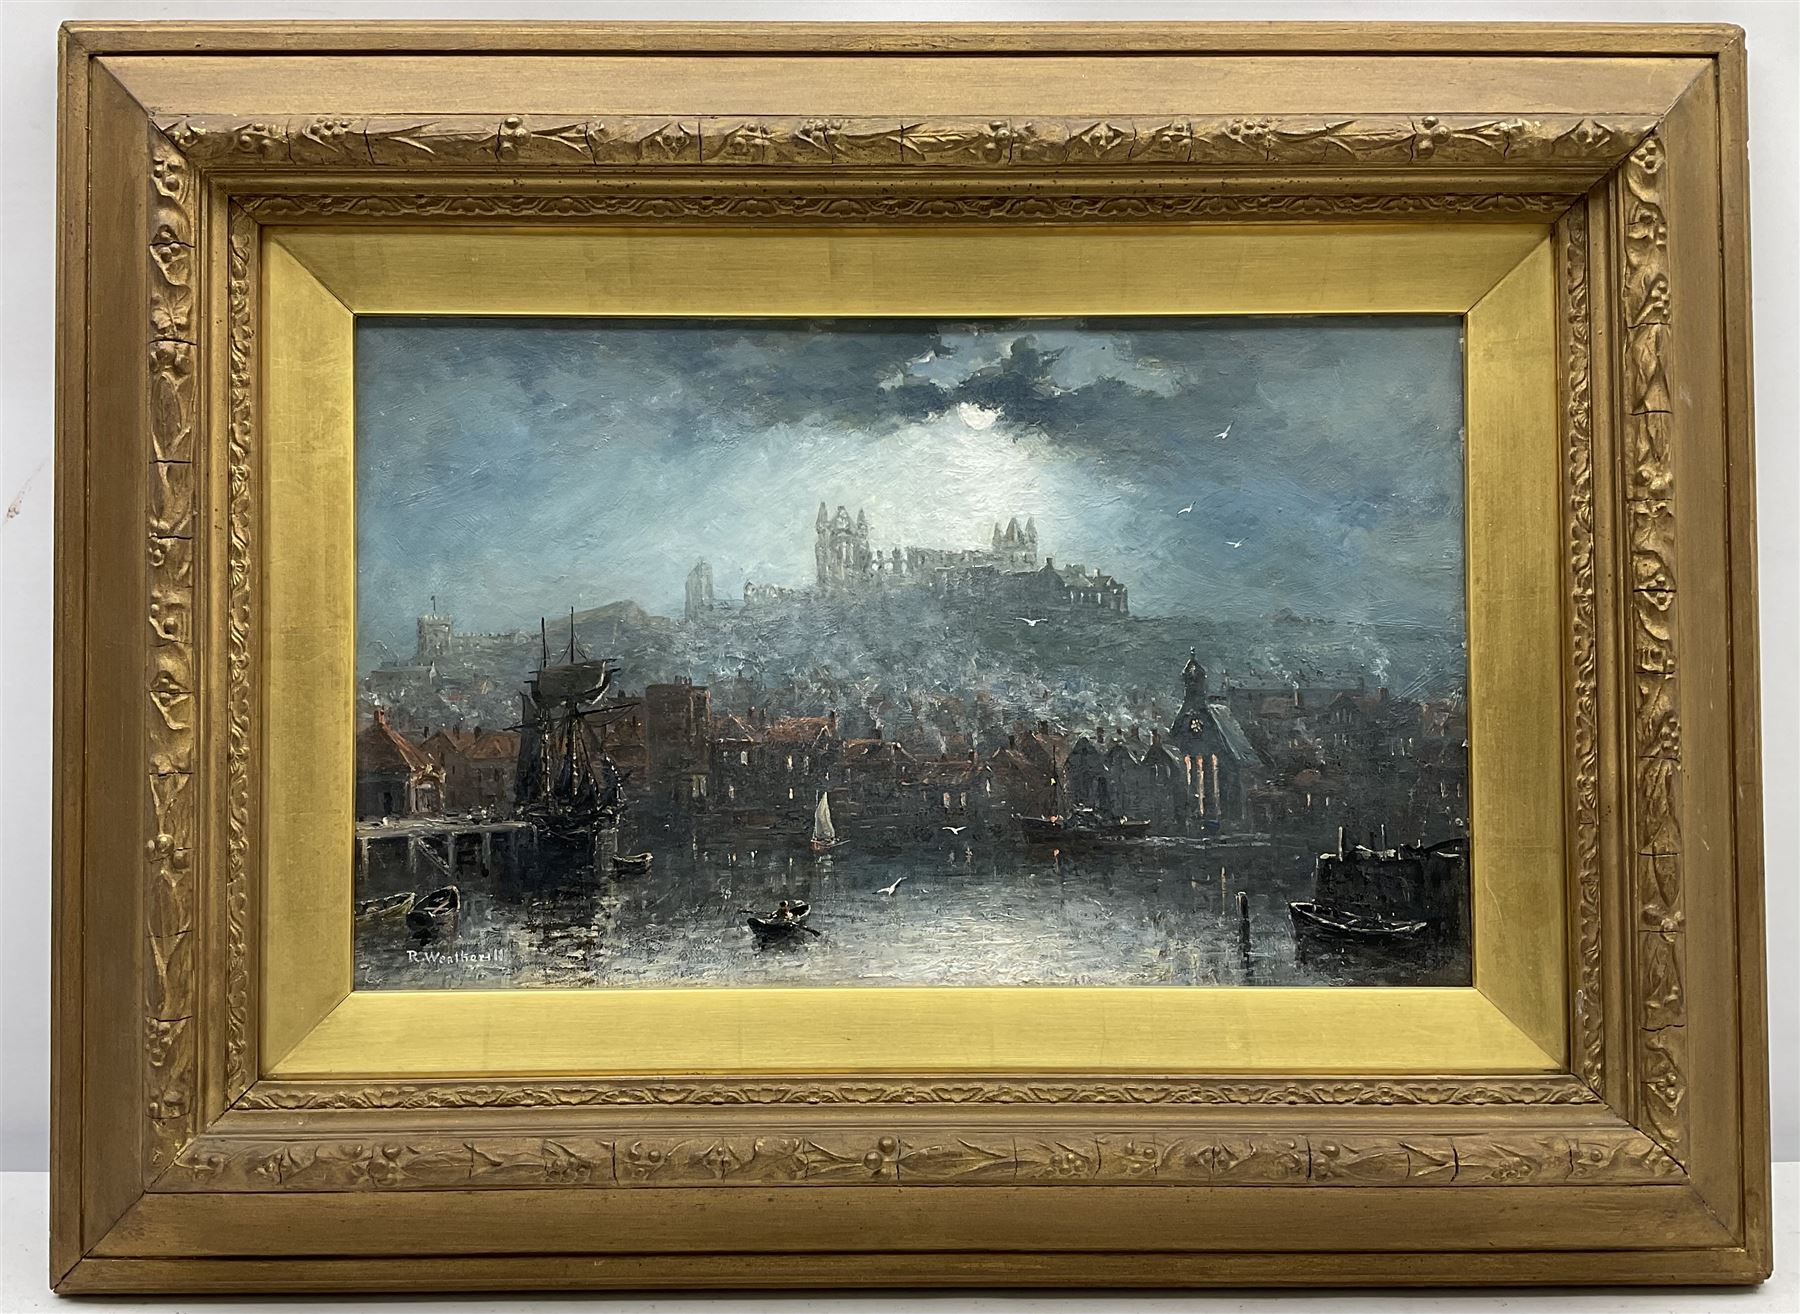 Richard Weatherill (British 1844-1913): Whitby Harbour and Abbey by Moonlight - Image 3 of 4